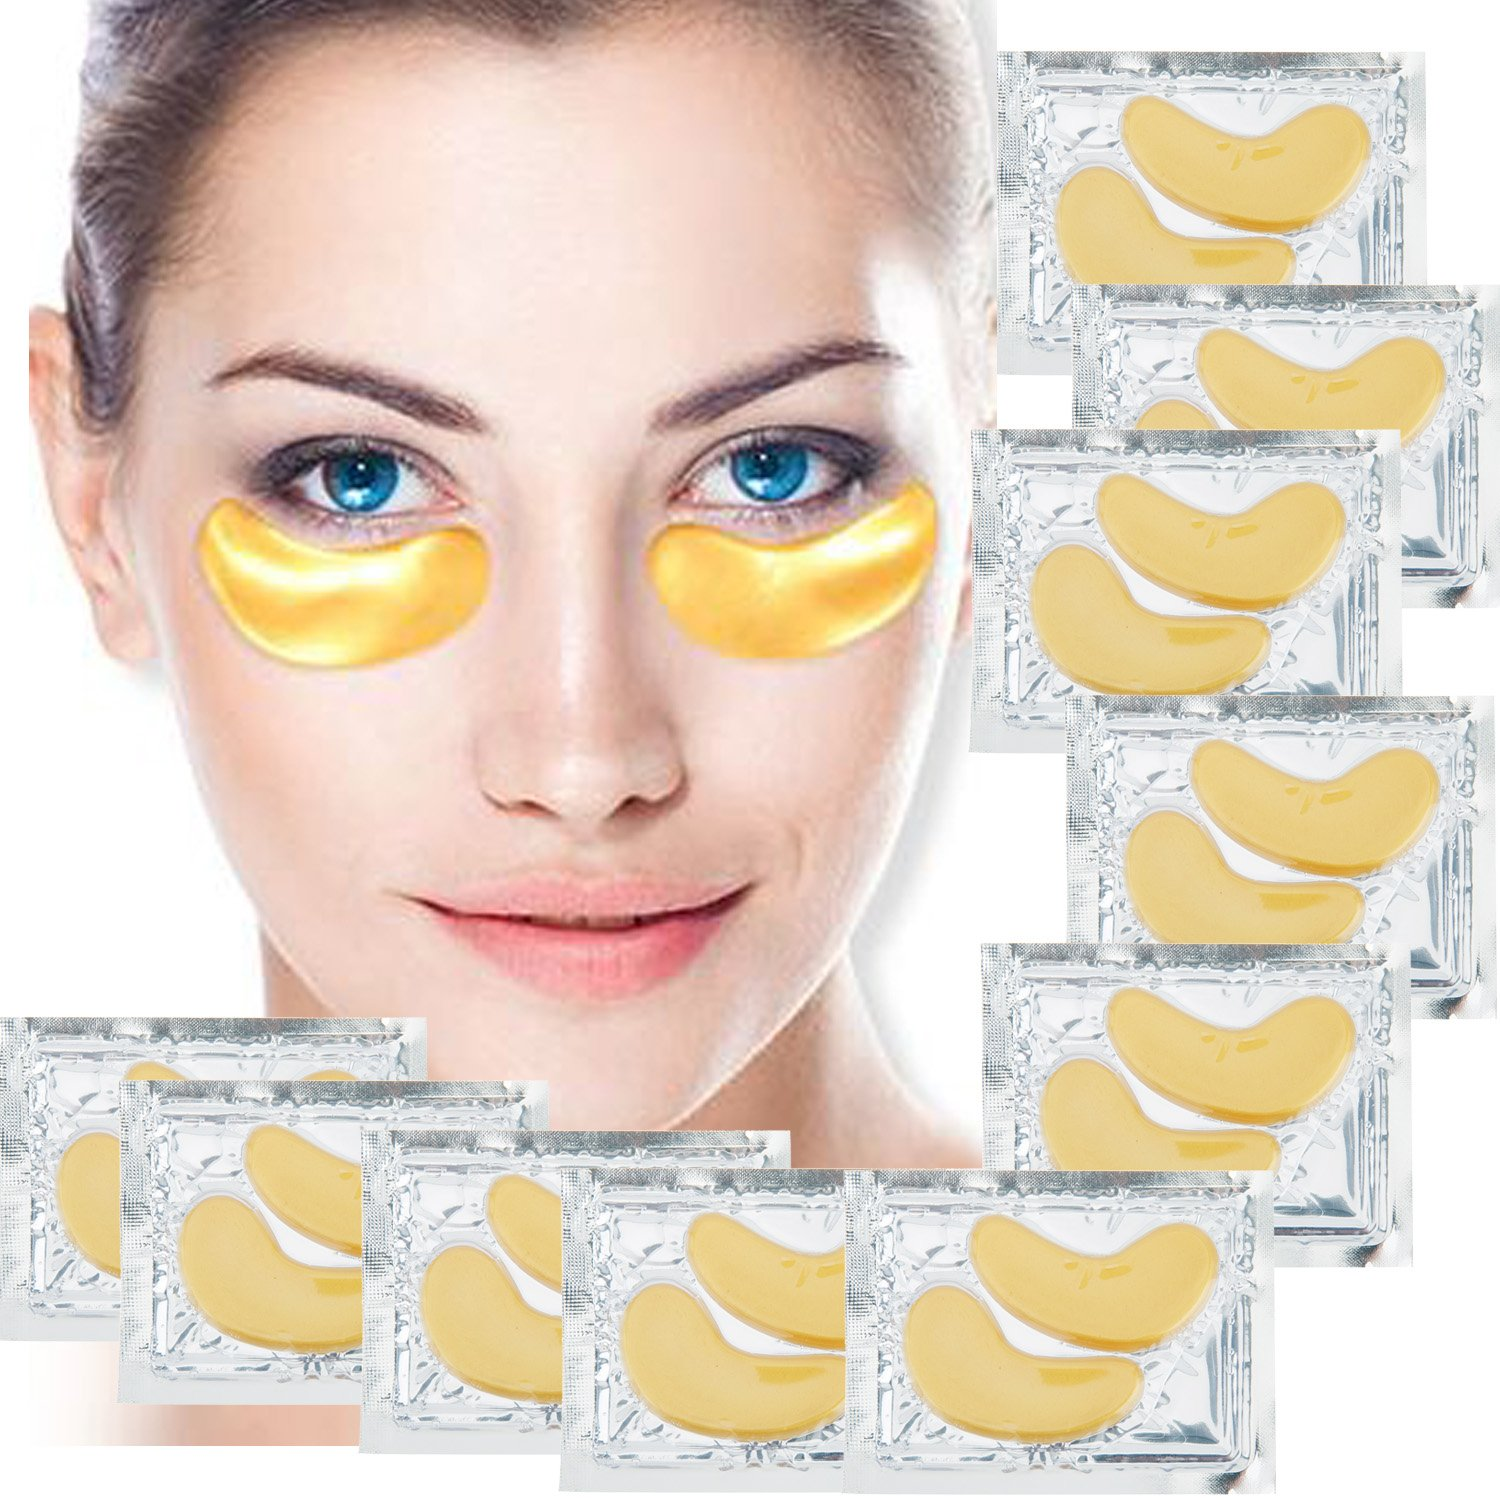 Set of 10 Pairs Eyes 24 K Gold Golden Collagen Gel Crystal Masks Patches Pads for Anti Aging Treatments, Wrinkles Crows Feet, Dark Circles and Puffiness Puffy Eyes Removal and Moisturizing VAGA